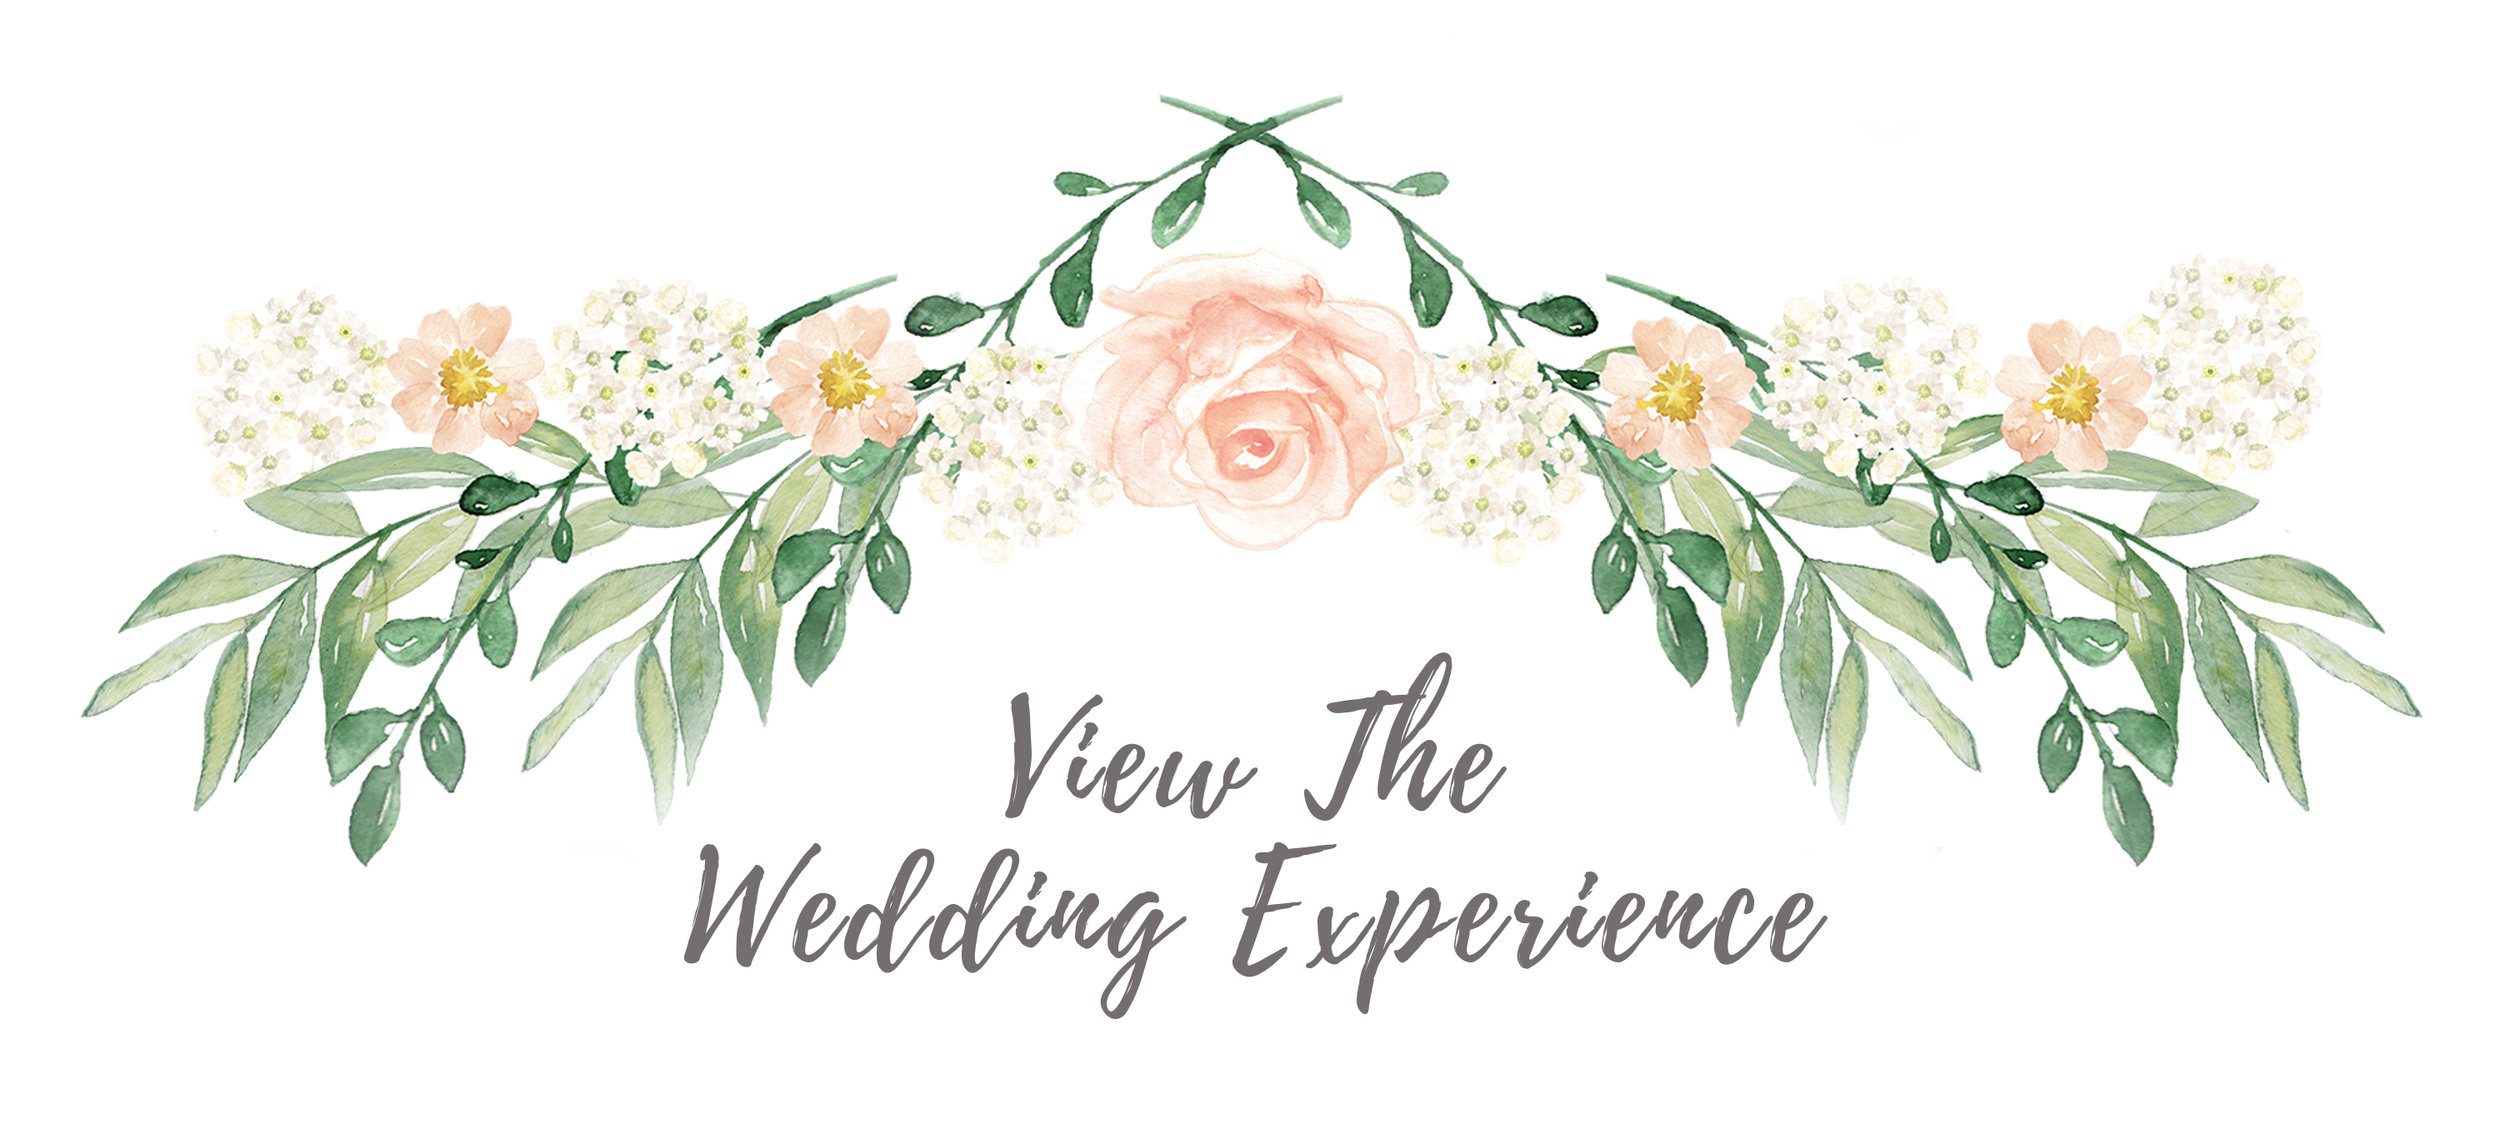 logo wedding experience.jpg